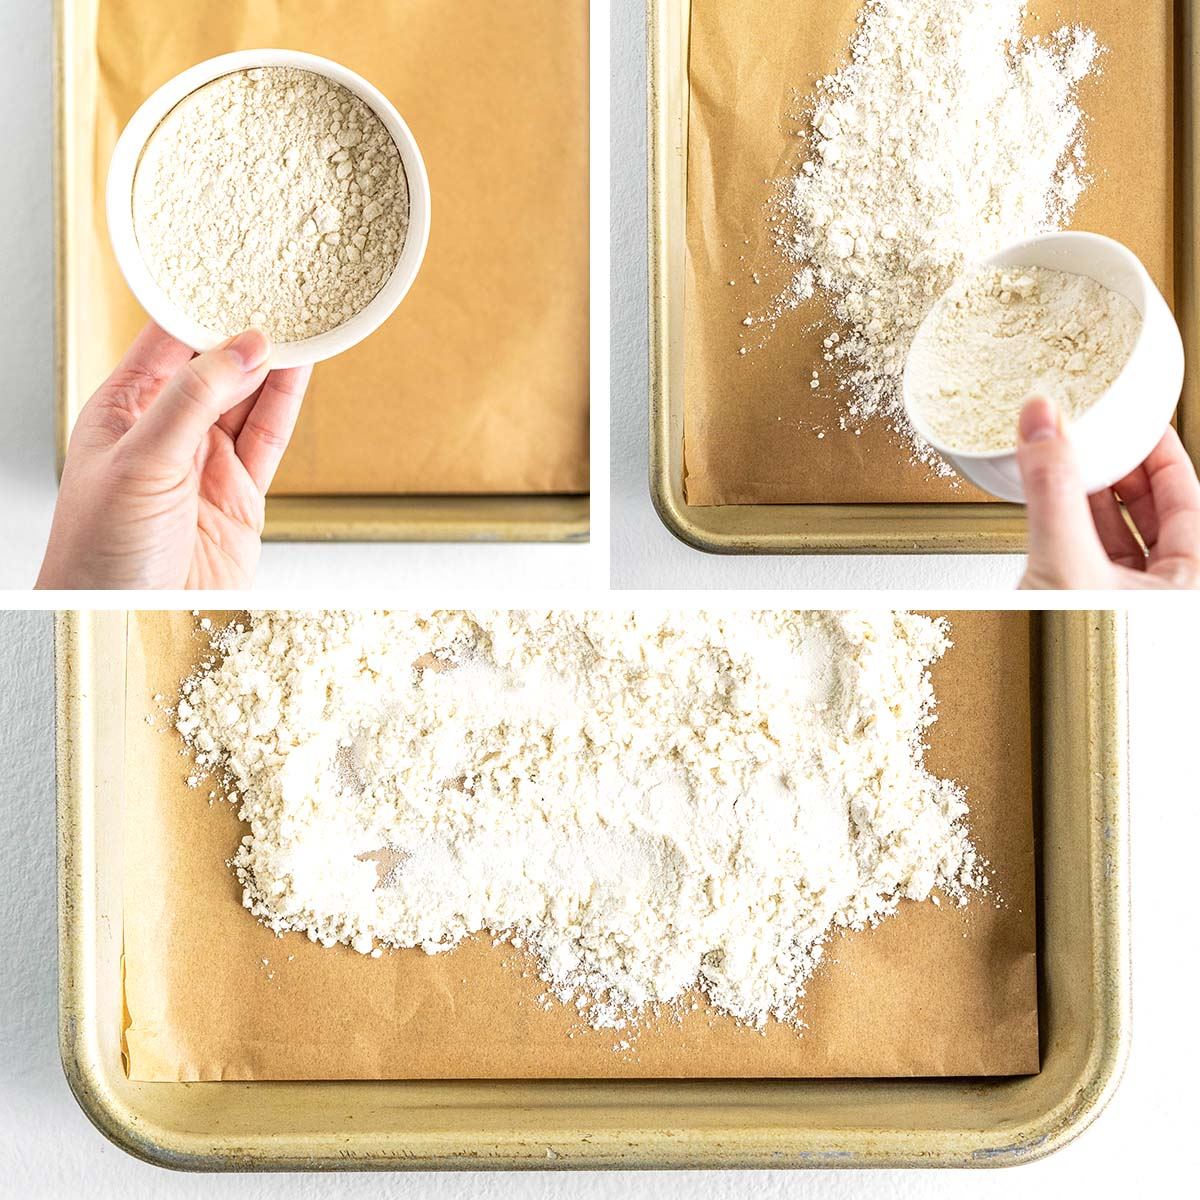 how to make raw flour safe to eat